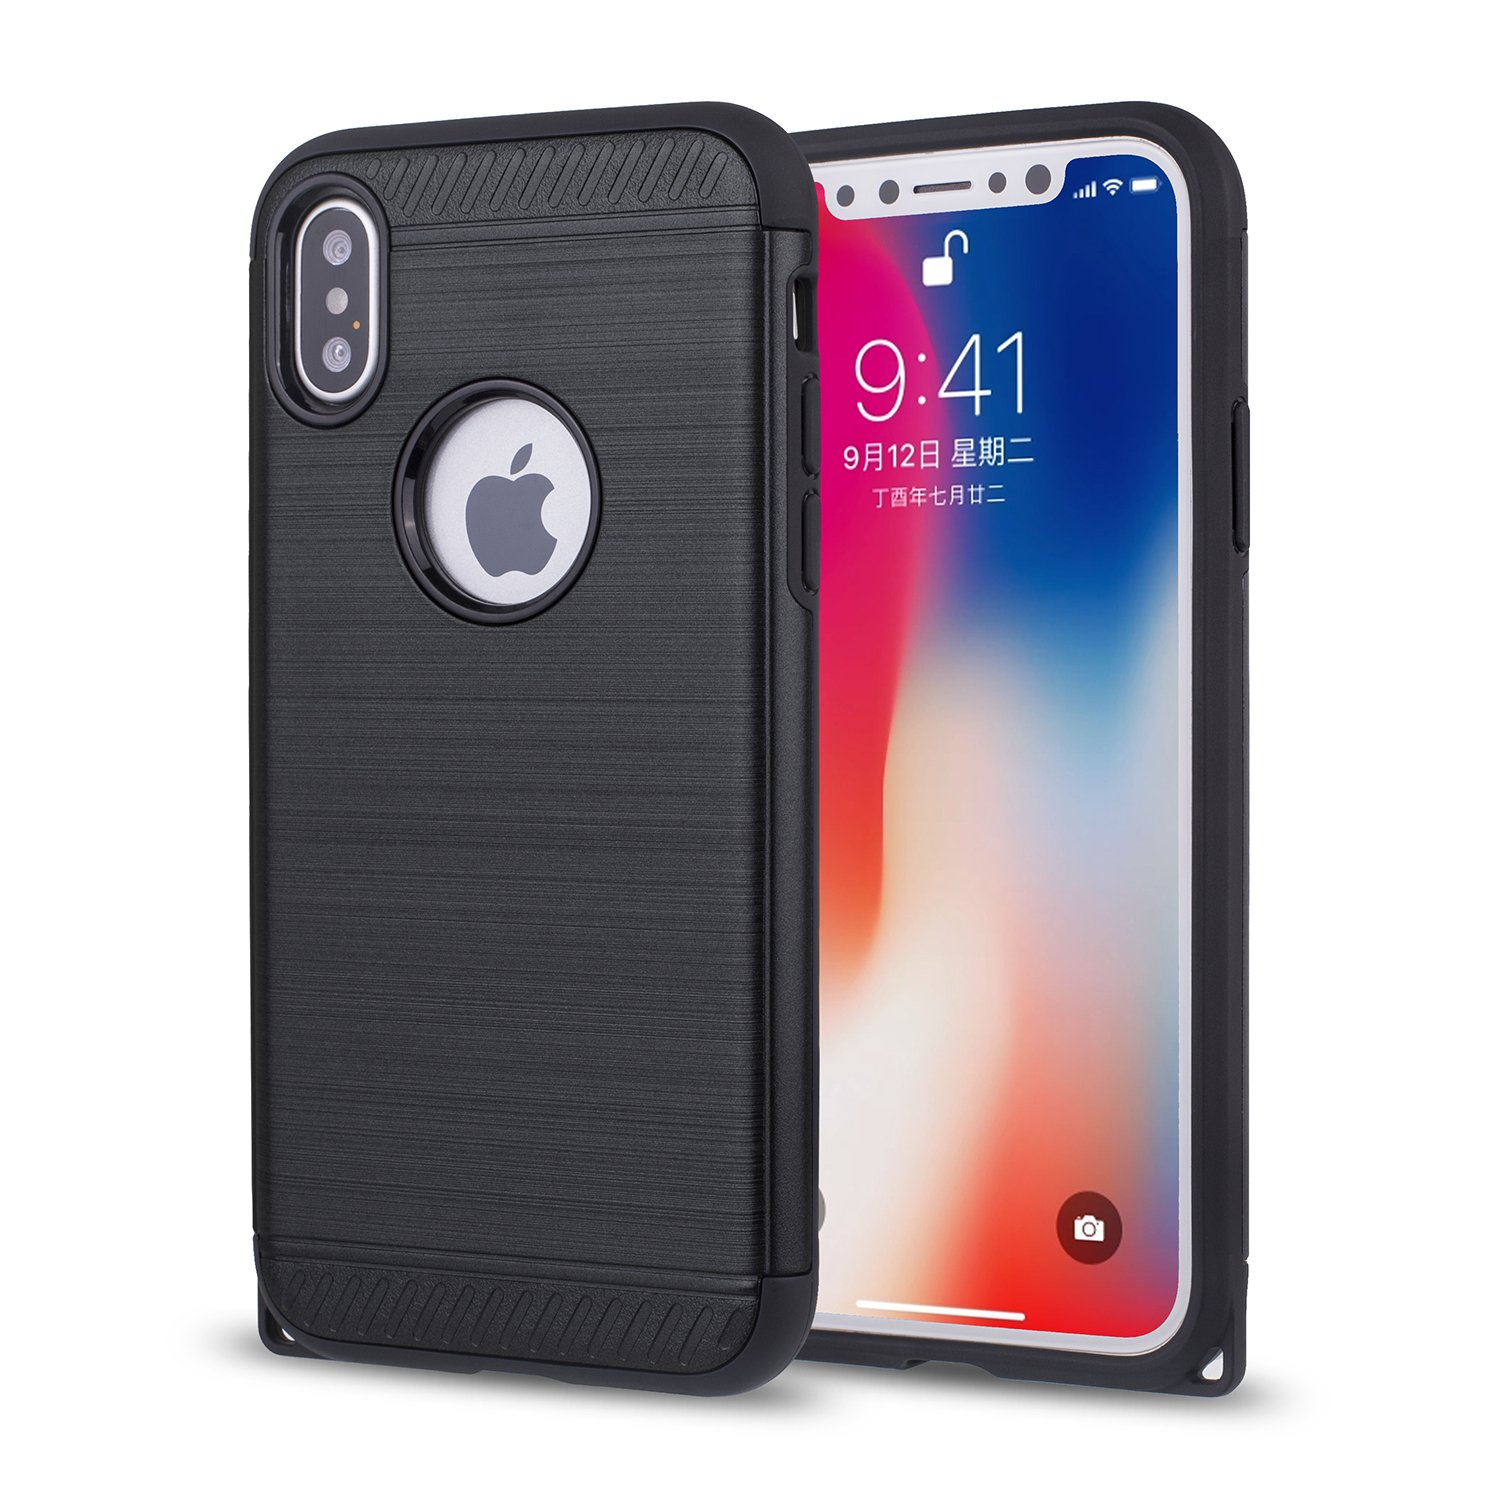 iPhone X Cases: Cover 6